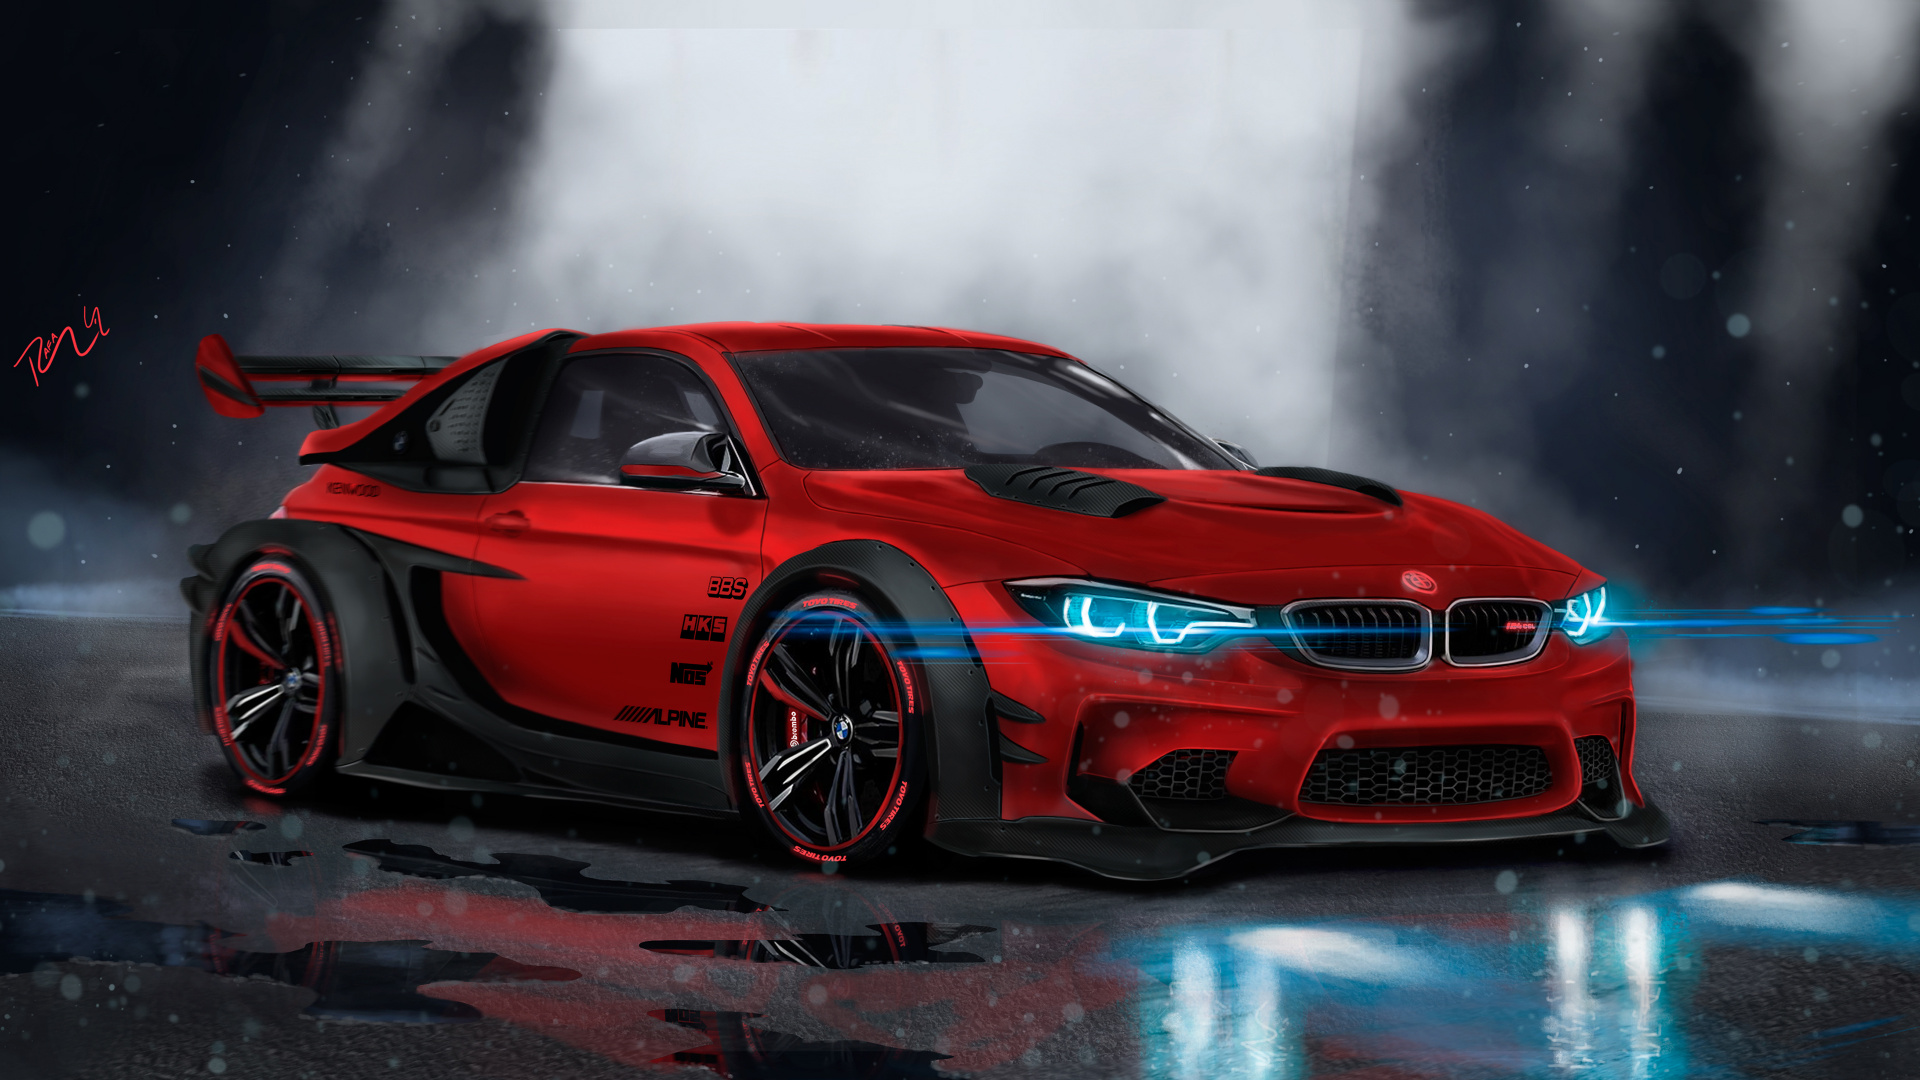 i've searched but i can't find anyone that makes a screen protector for my computer so i figured i'll. Download Concept Art Bmw Sports Car Wallpaper 1920x1080 Full Hd Hdtv Fhd 1080p